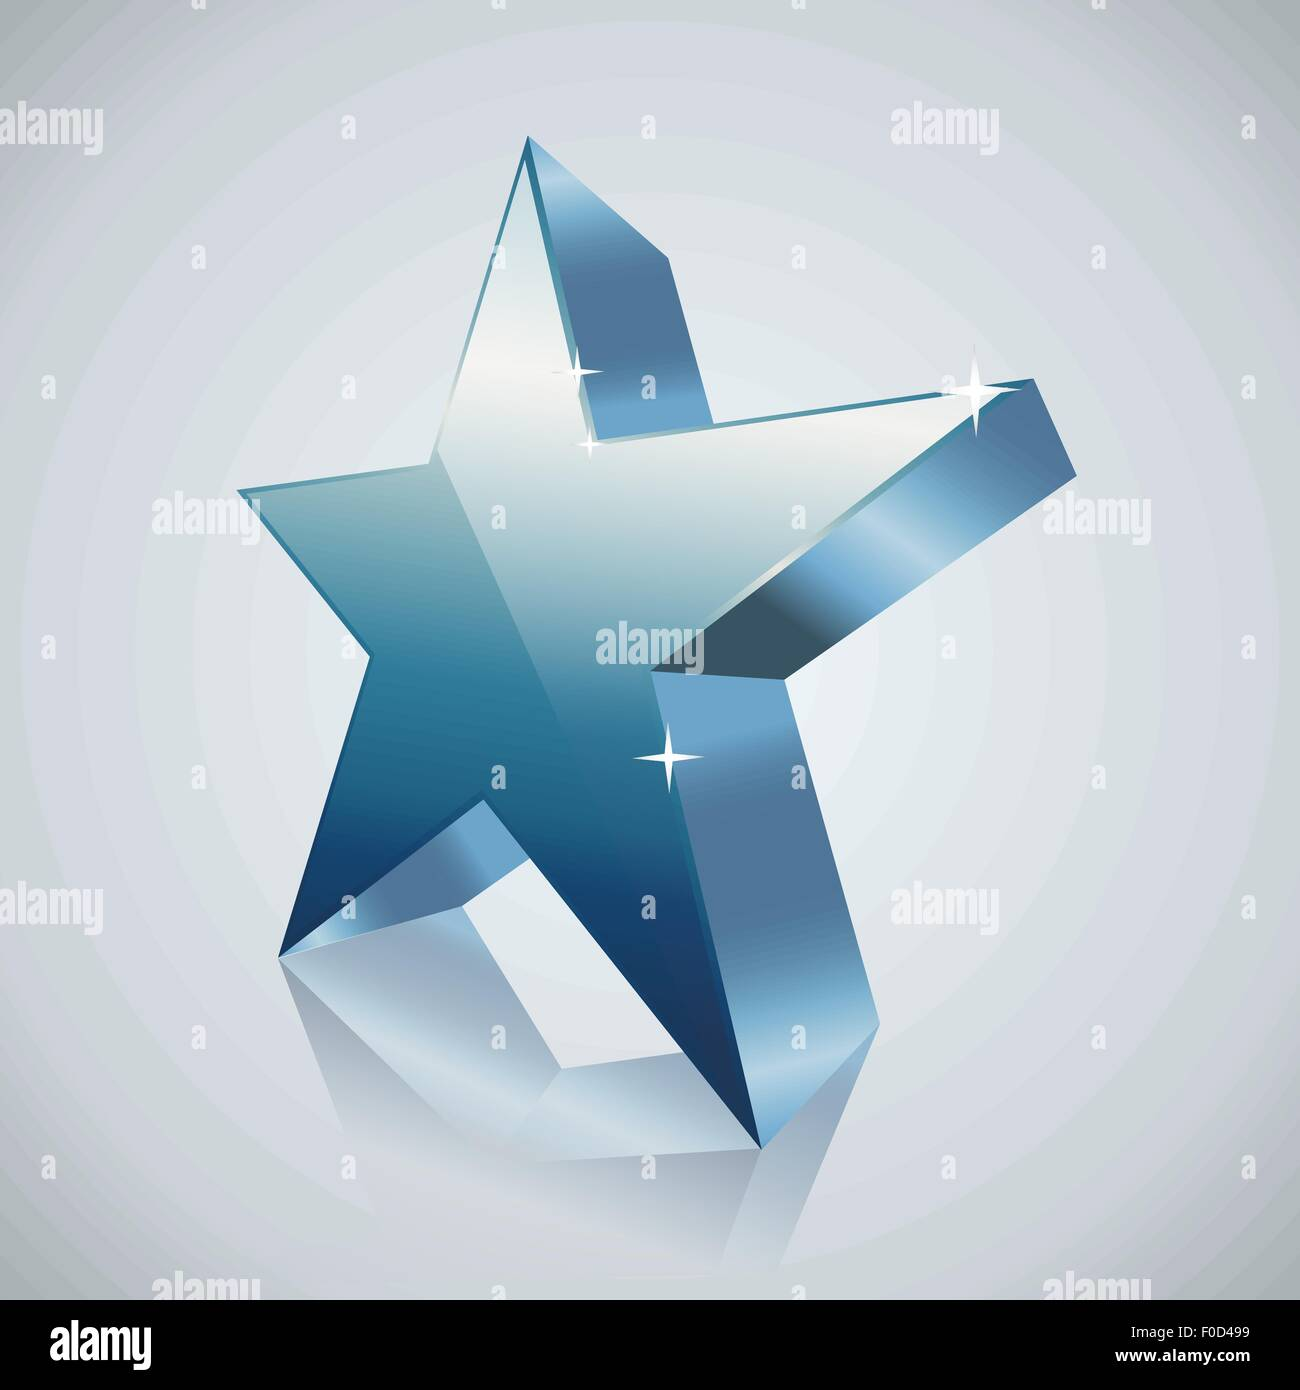 blue star with reflection - Stock Image